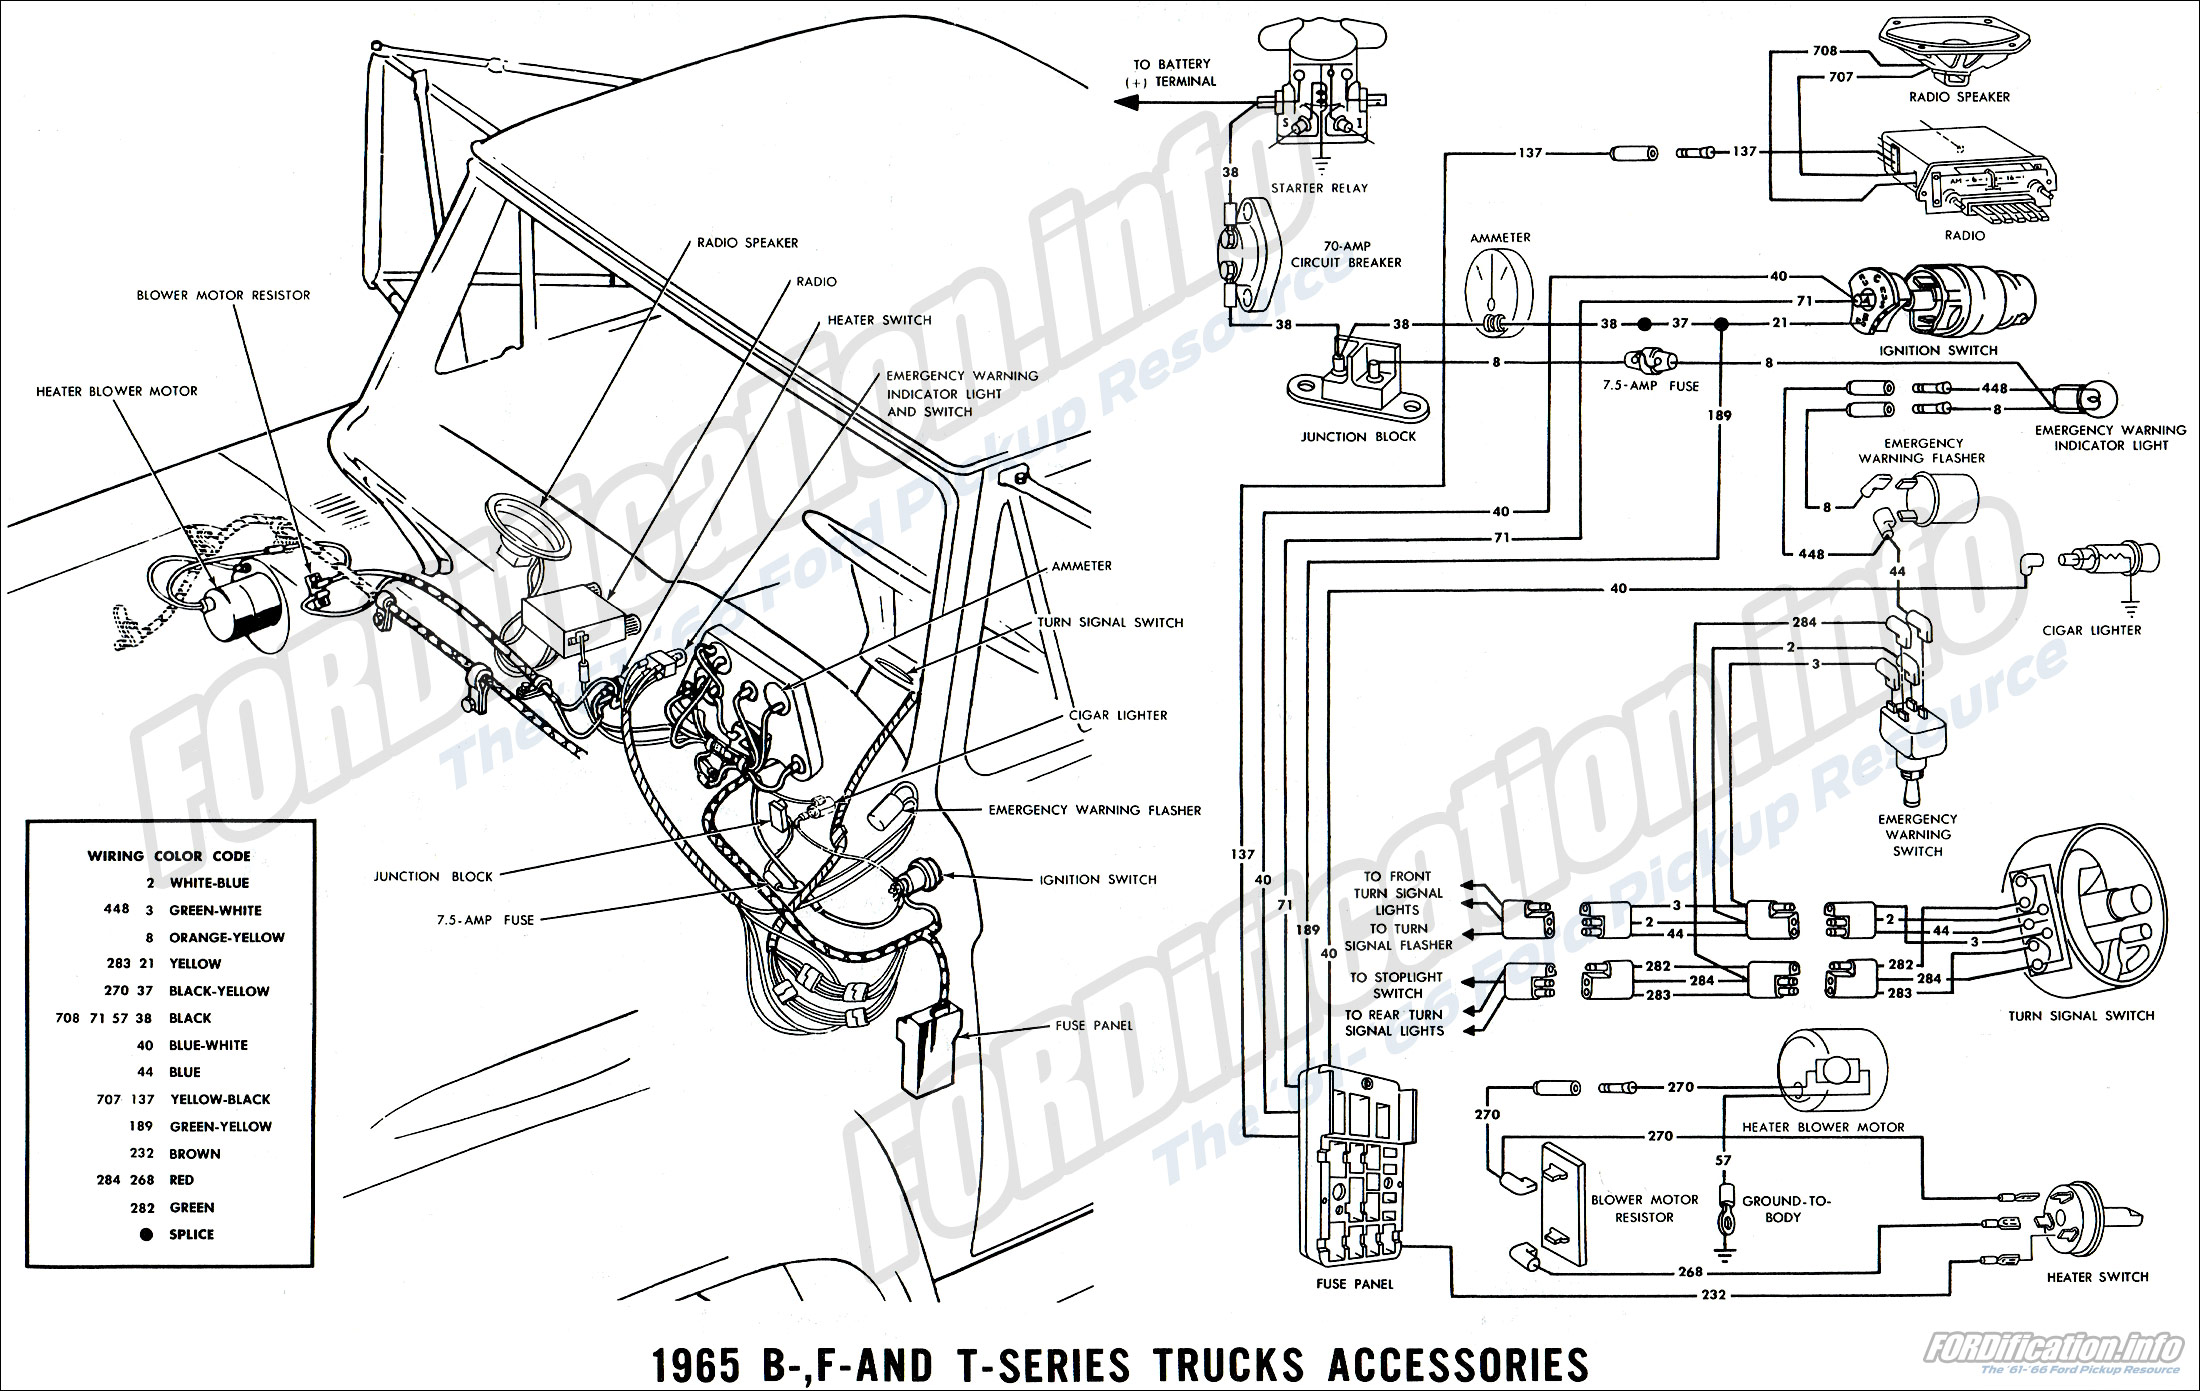 1965 ford truck wiring diagrams fordification info the '61 '66 1973 ford wiring diagram 1965 b , f and t series trucks accessories